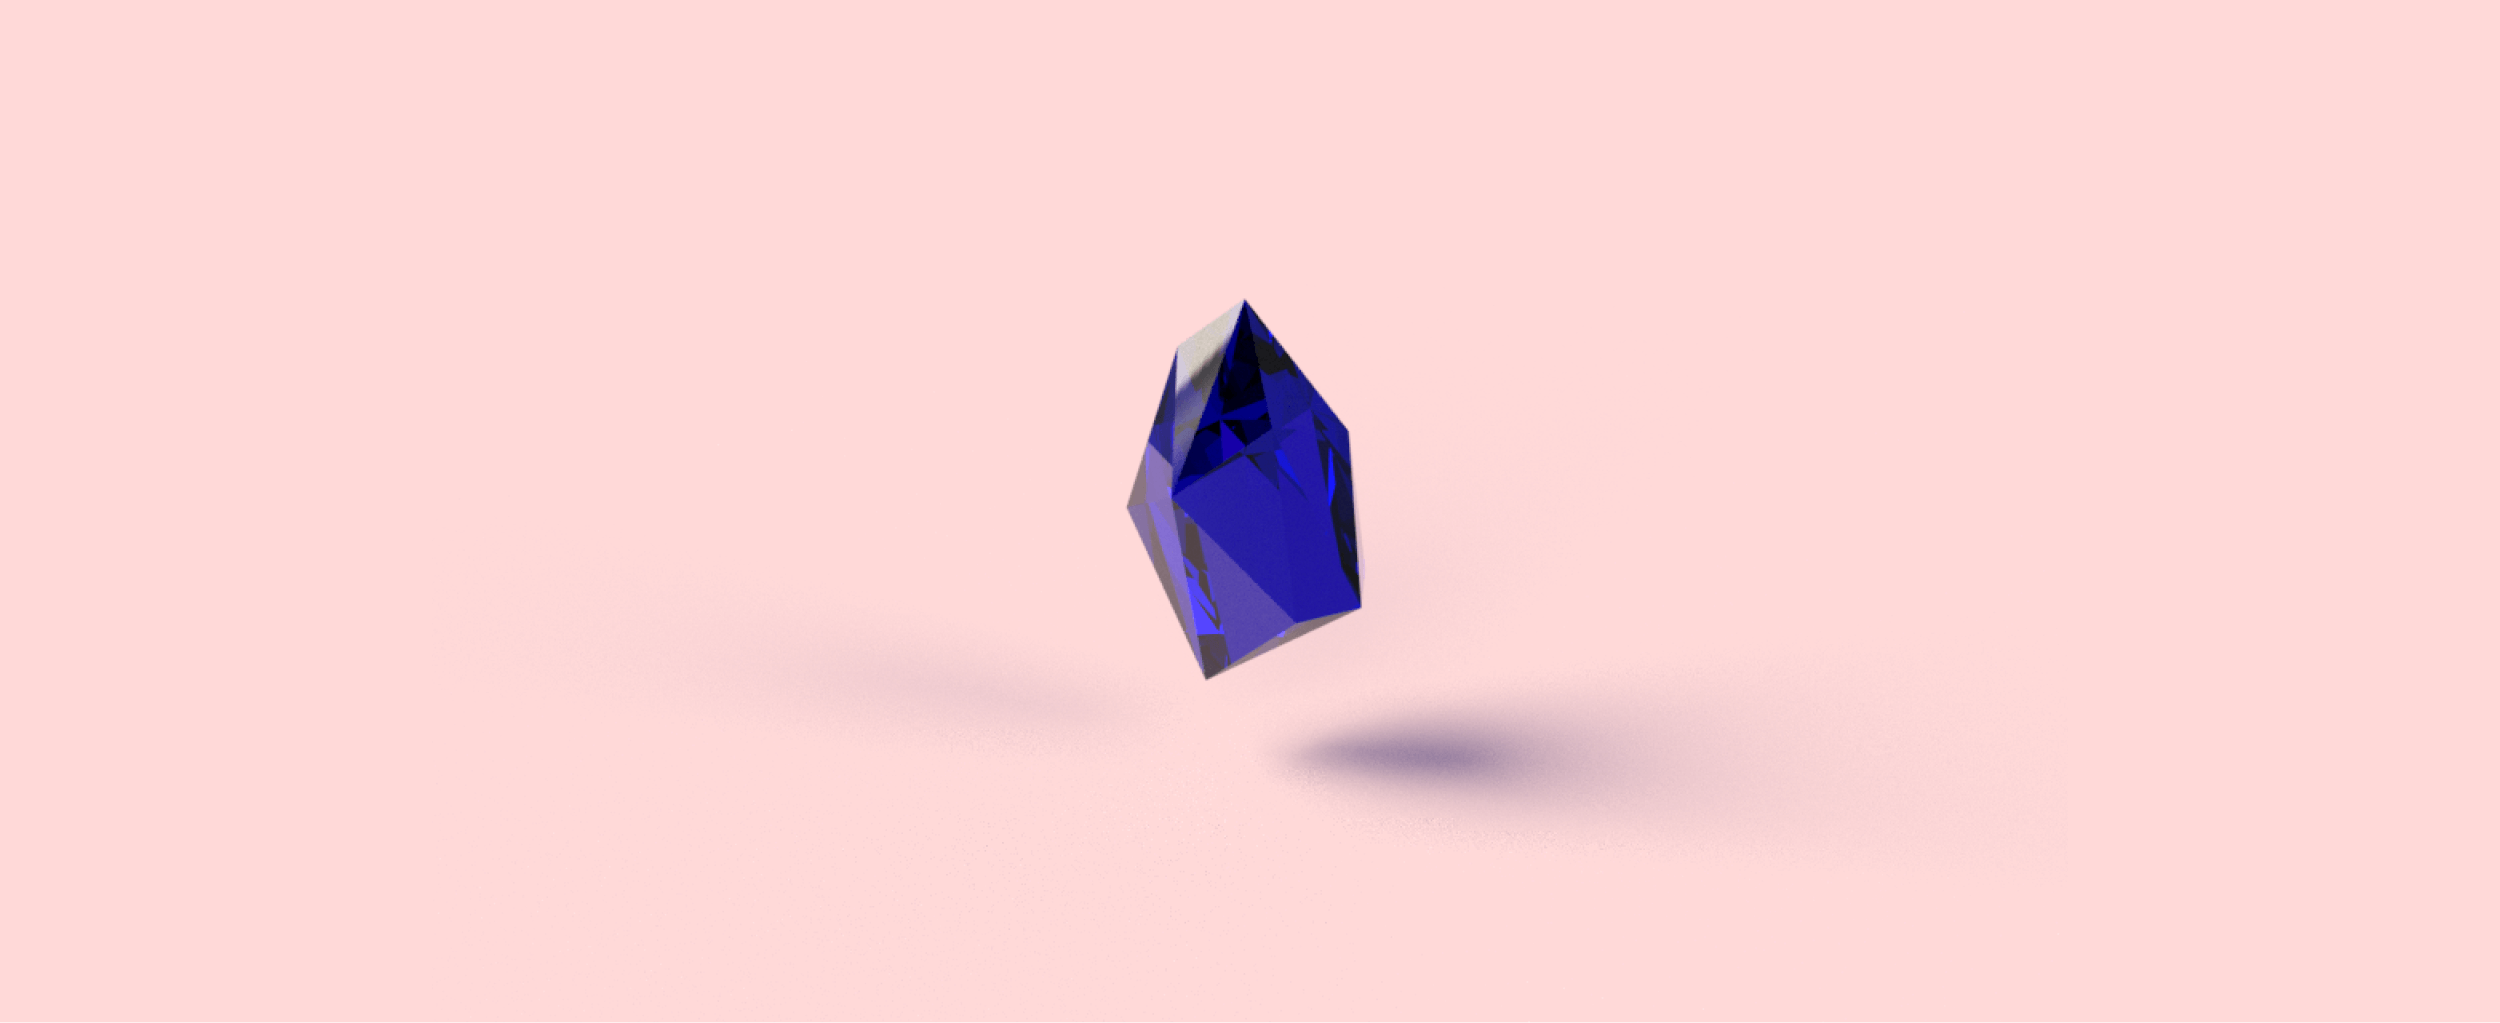 A purple crystal on a solid pink background